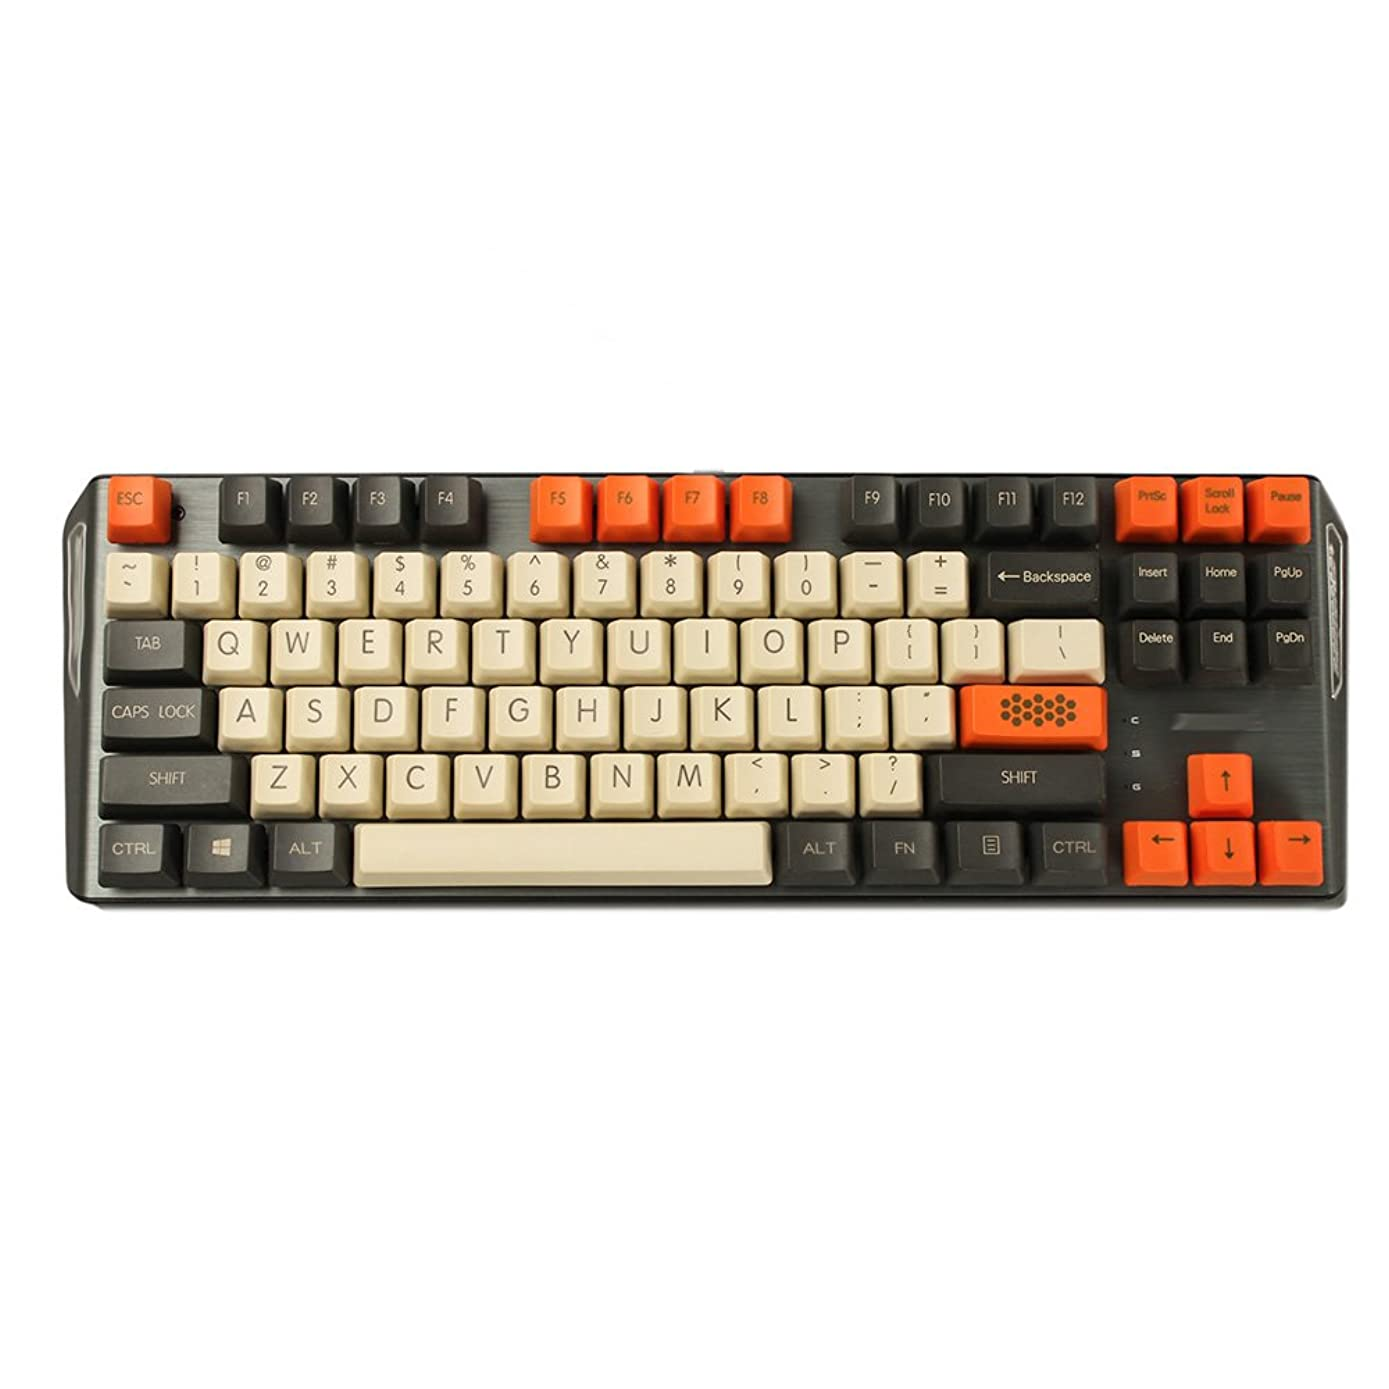 YMDK Carbon 61 87 104 Top Print Keyset Thick PBT OEM Profile Keycaps for MX Mechanical Keyboard (87) ykw0490172643